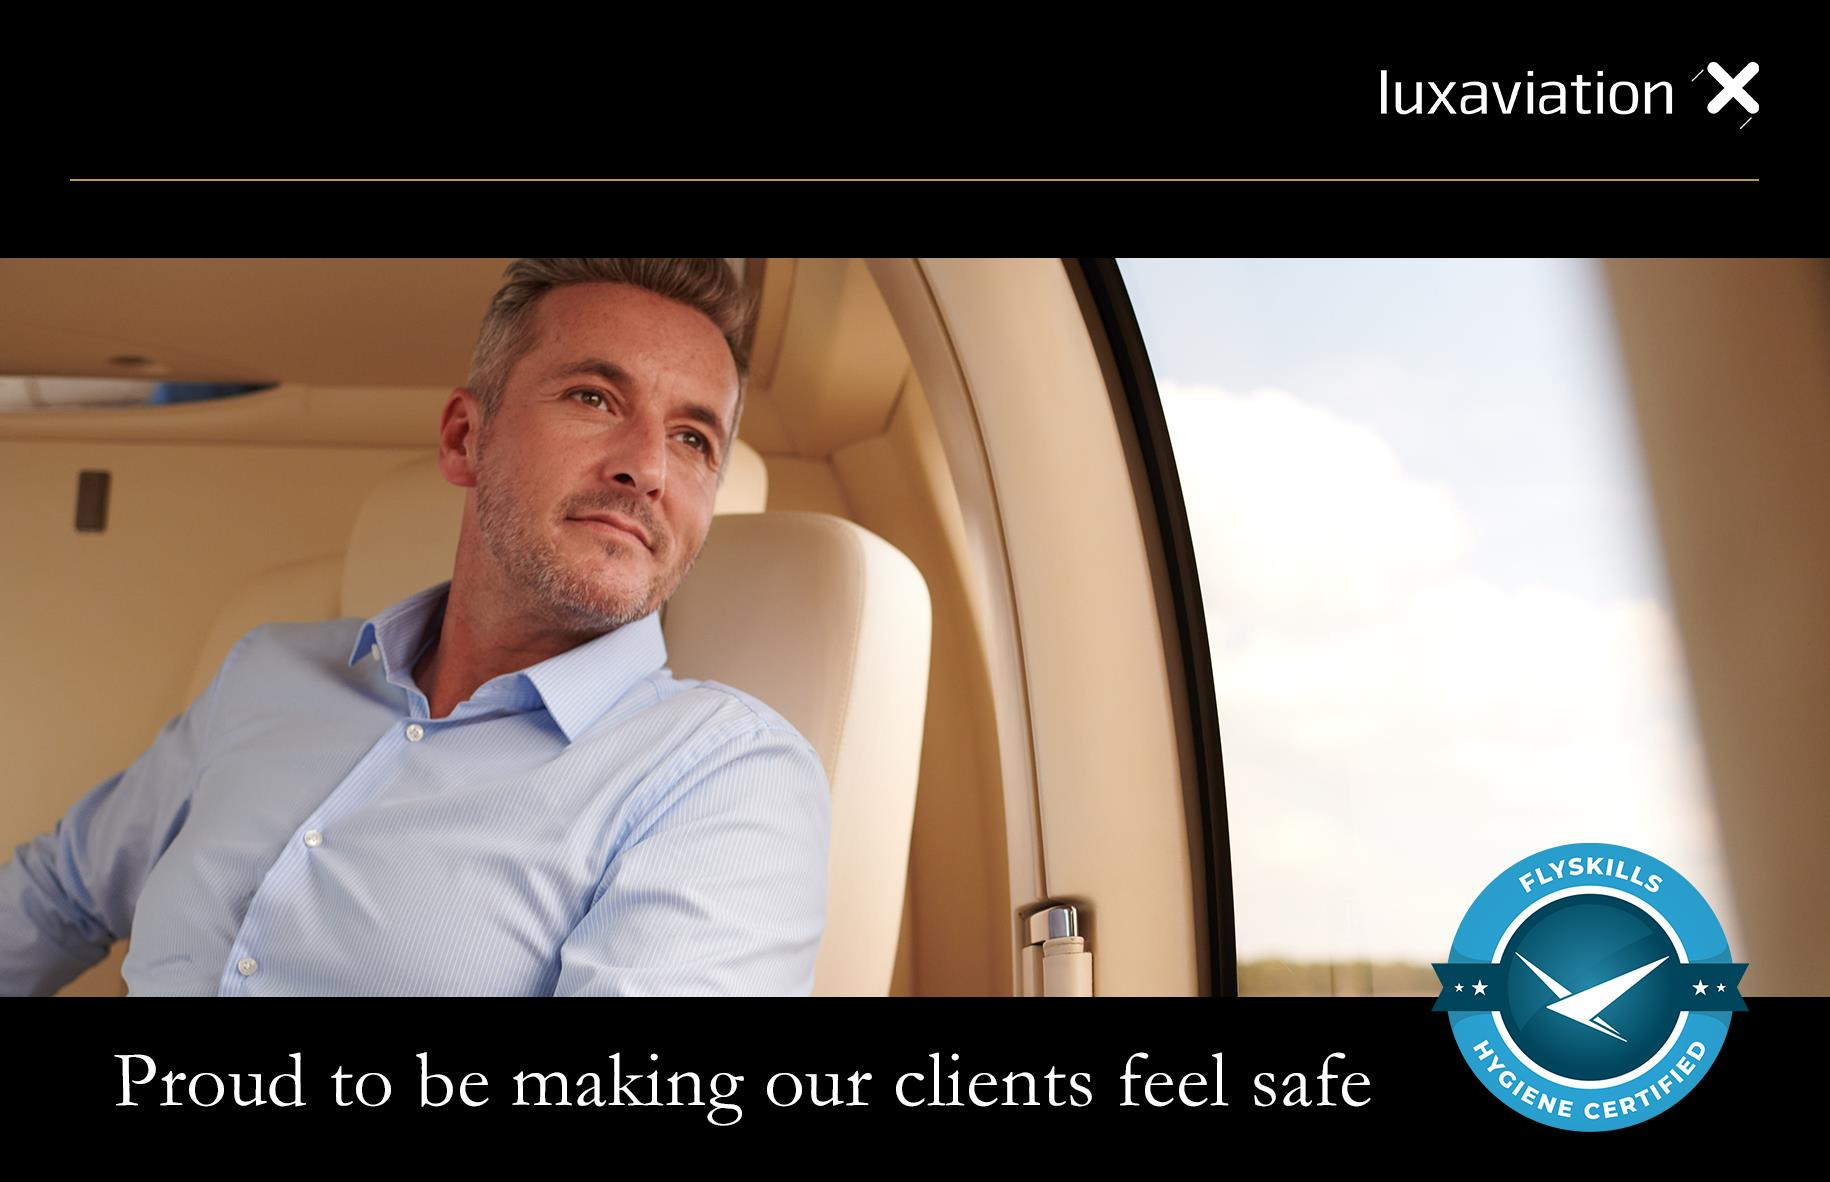 Luxaviation Group implementing FlySkills hygiene and safety standards